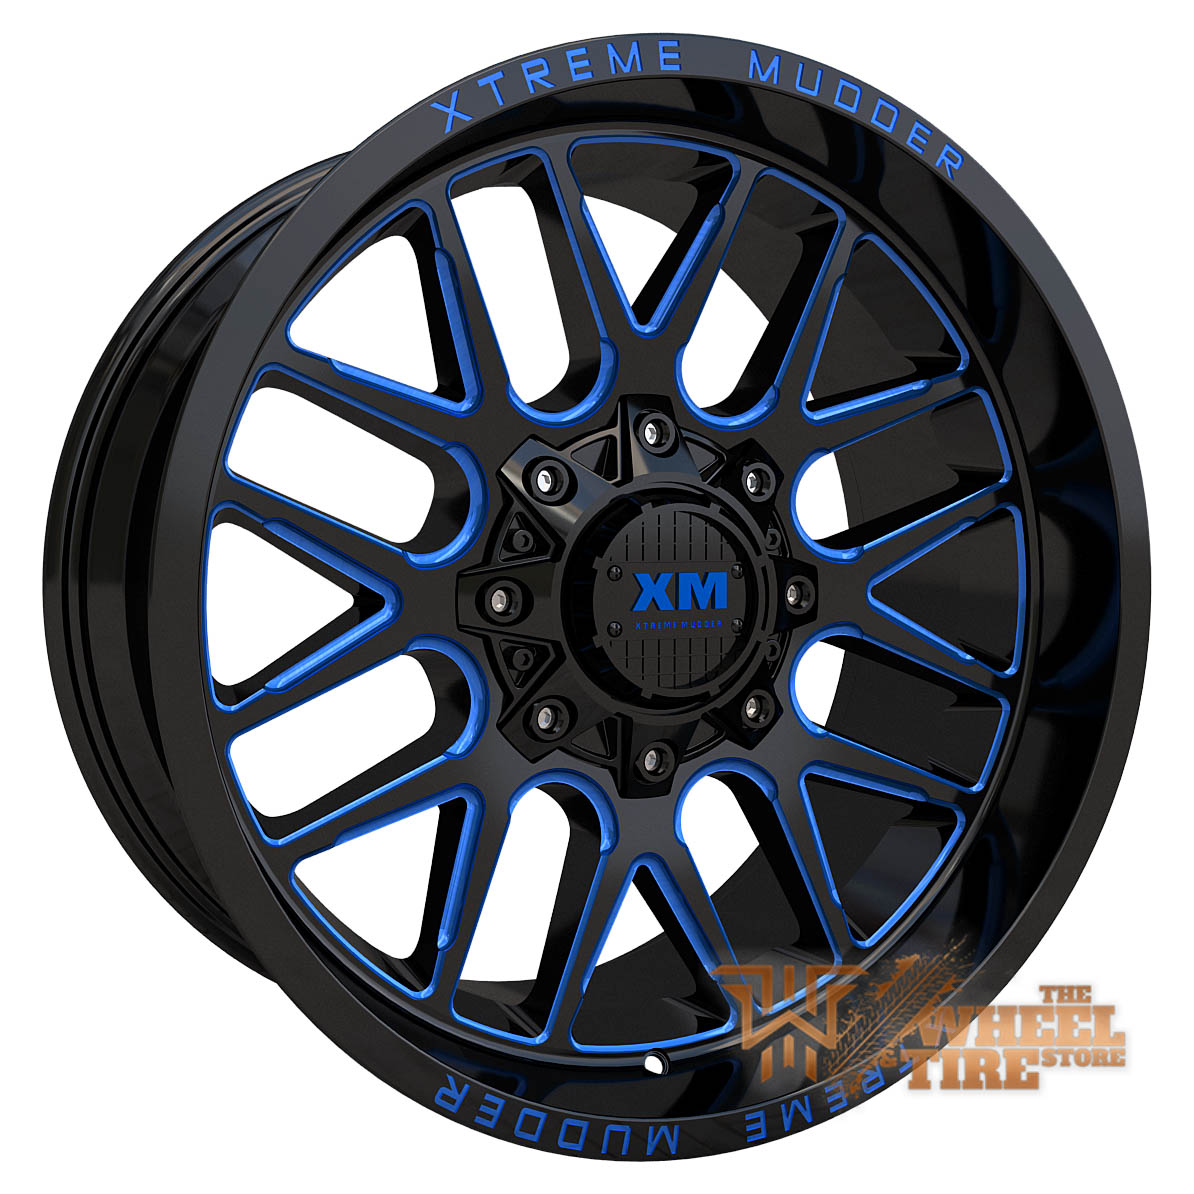 XTREME MUDDER XM-338 Wheel in Gloss Black Blue Milled (Set of 4)